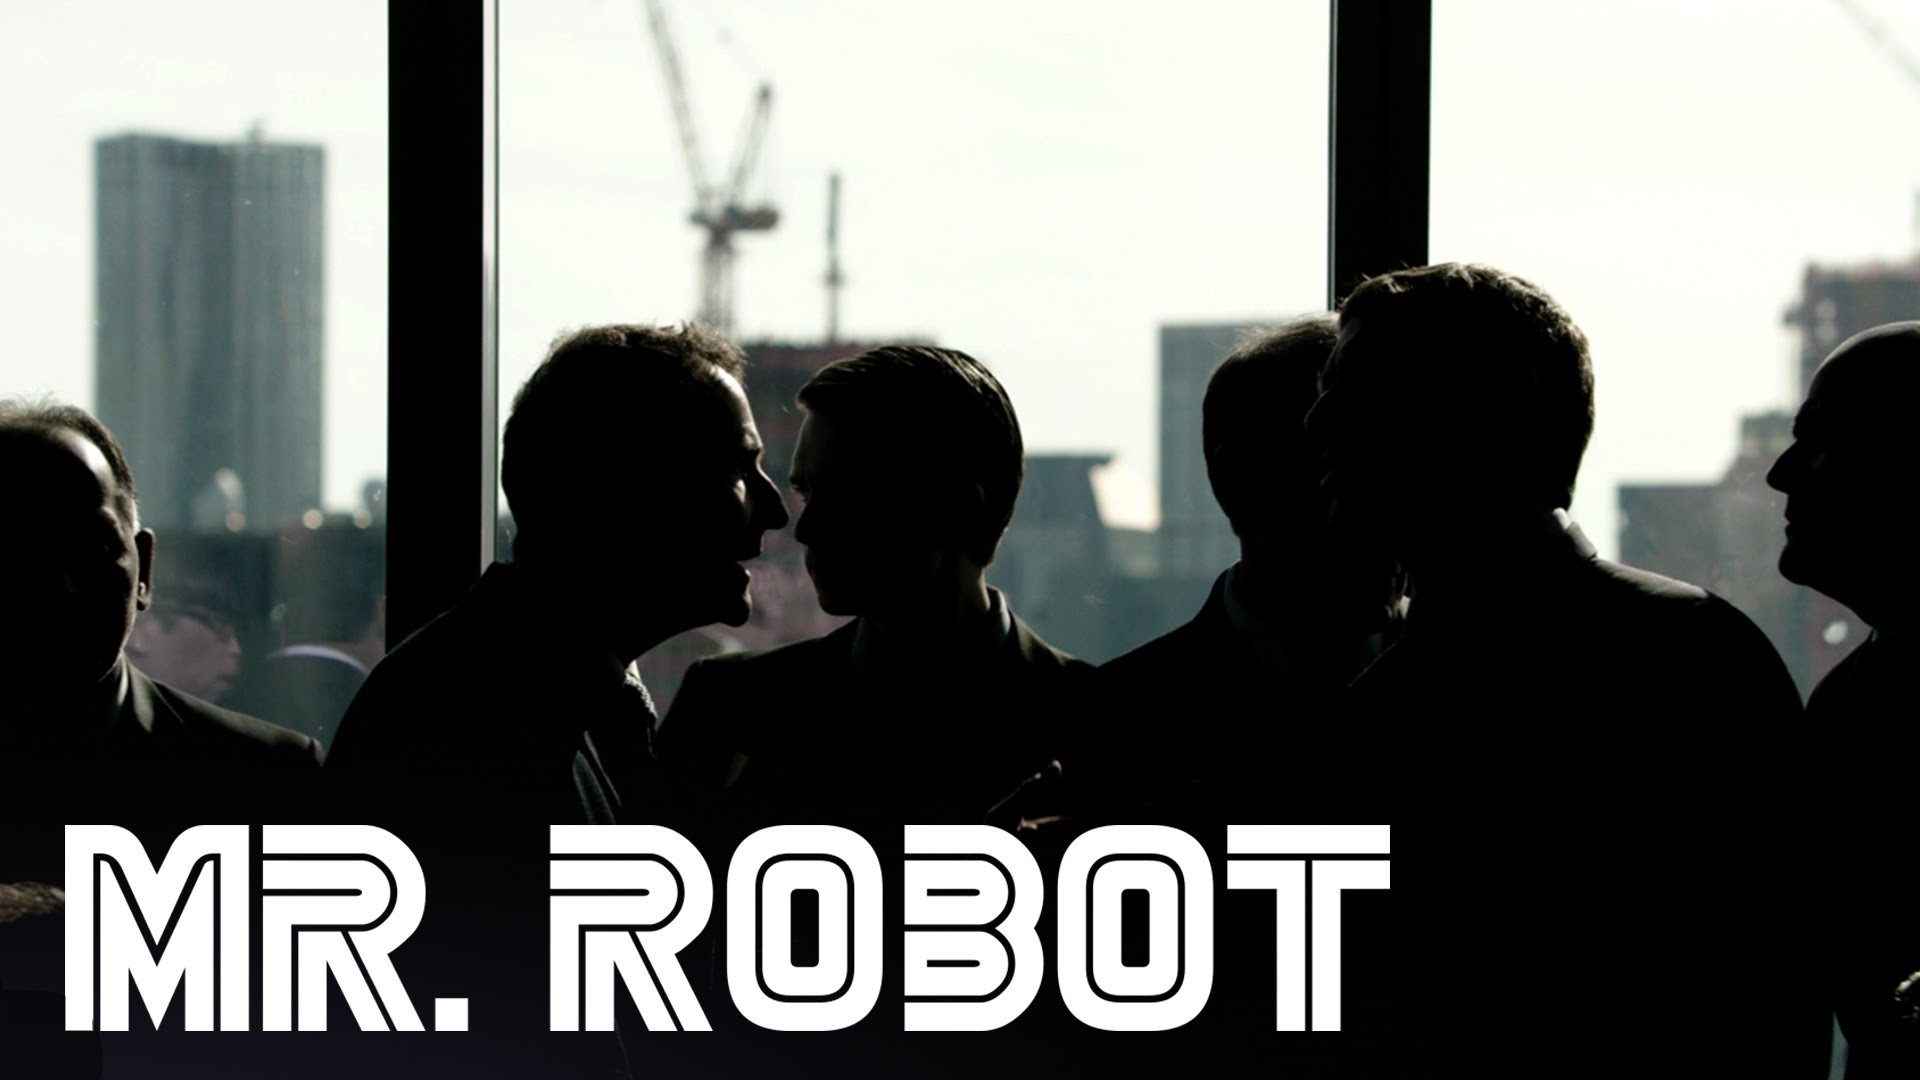 Mr. Robot Preview. Global Conspiracy